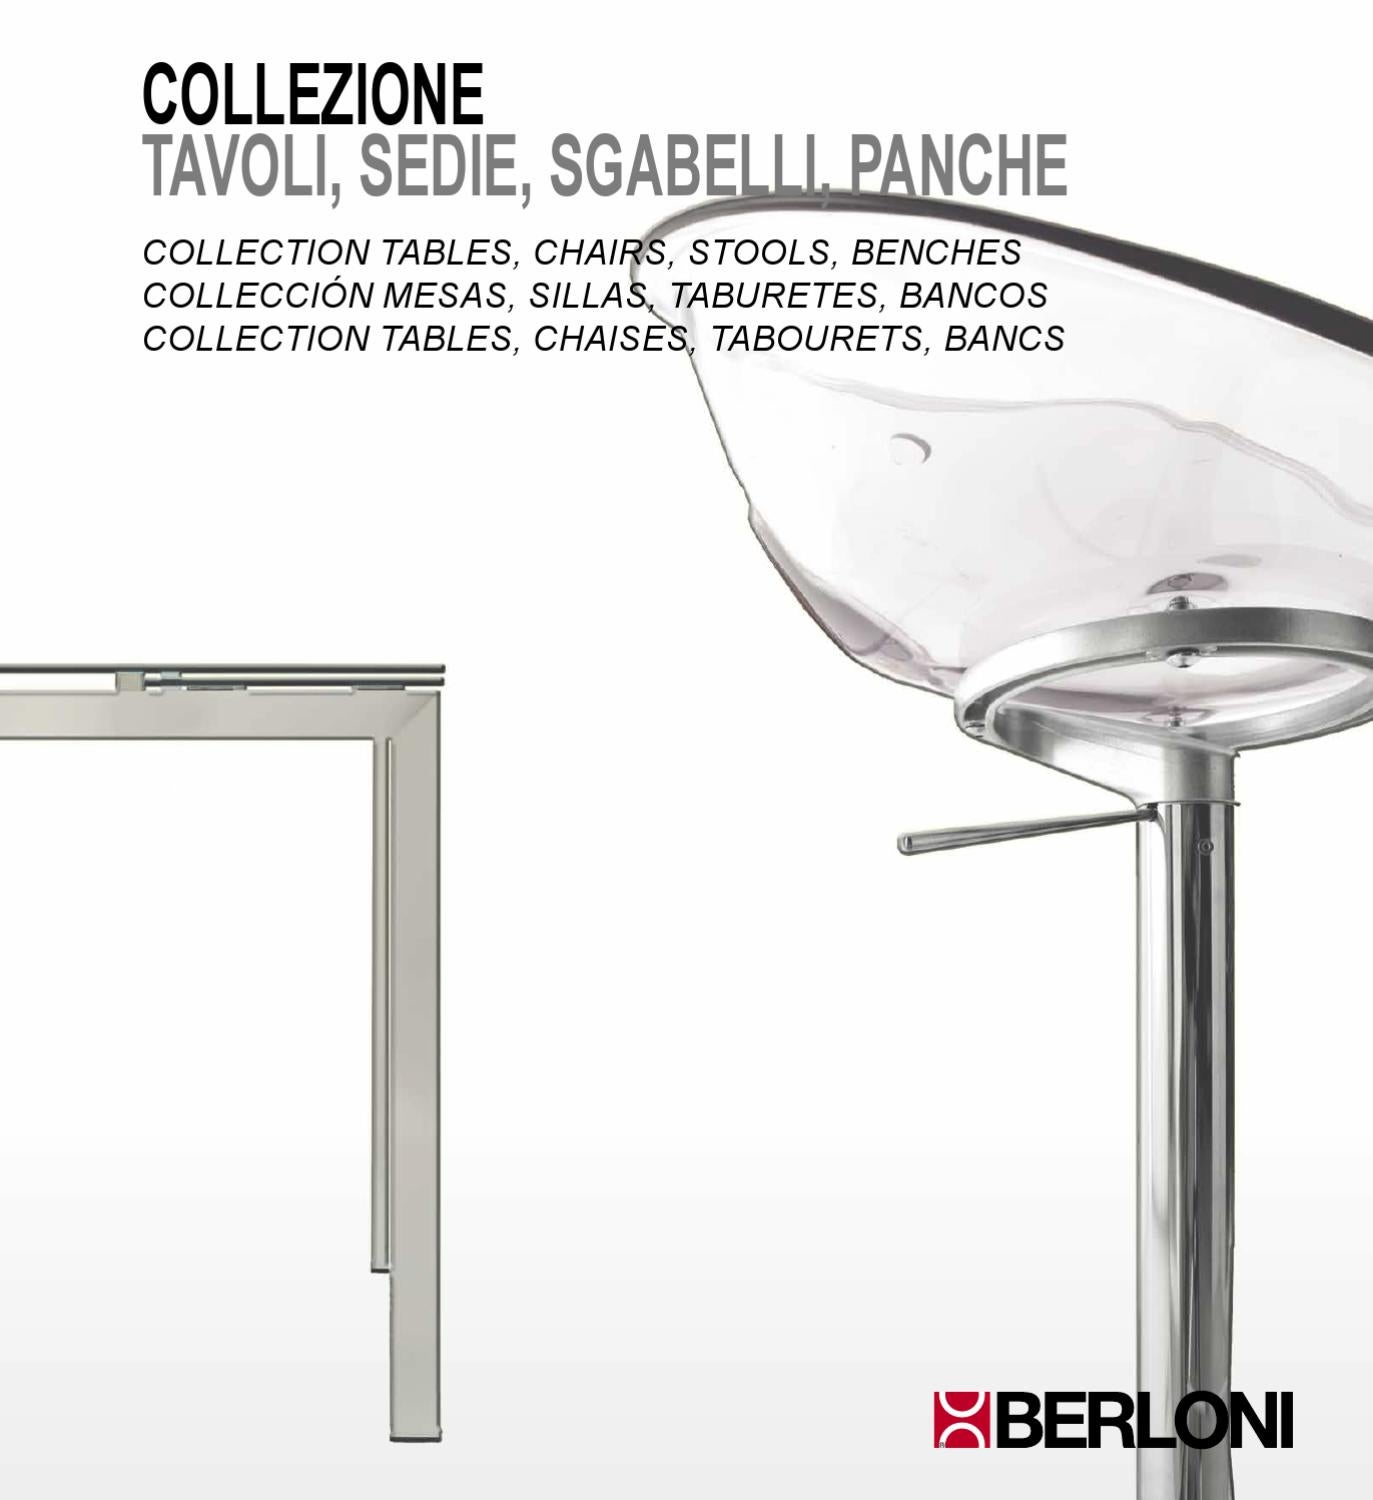 Tavolo Cucina Sedie Berloni.Berloni Kitchen Tables Chairs Stools Benches By